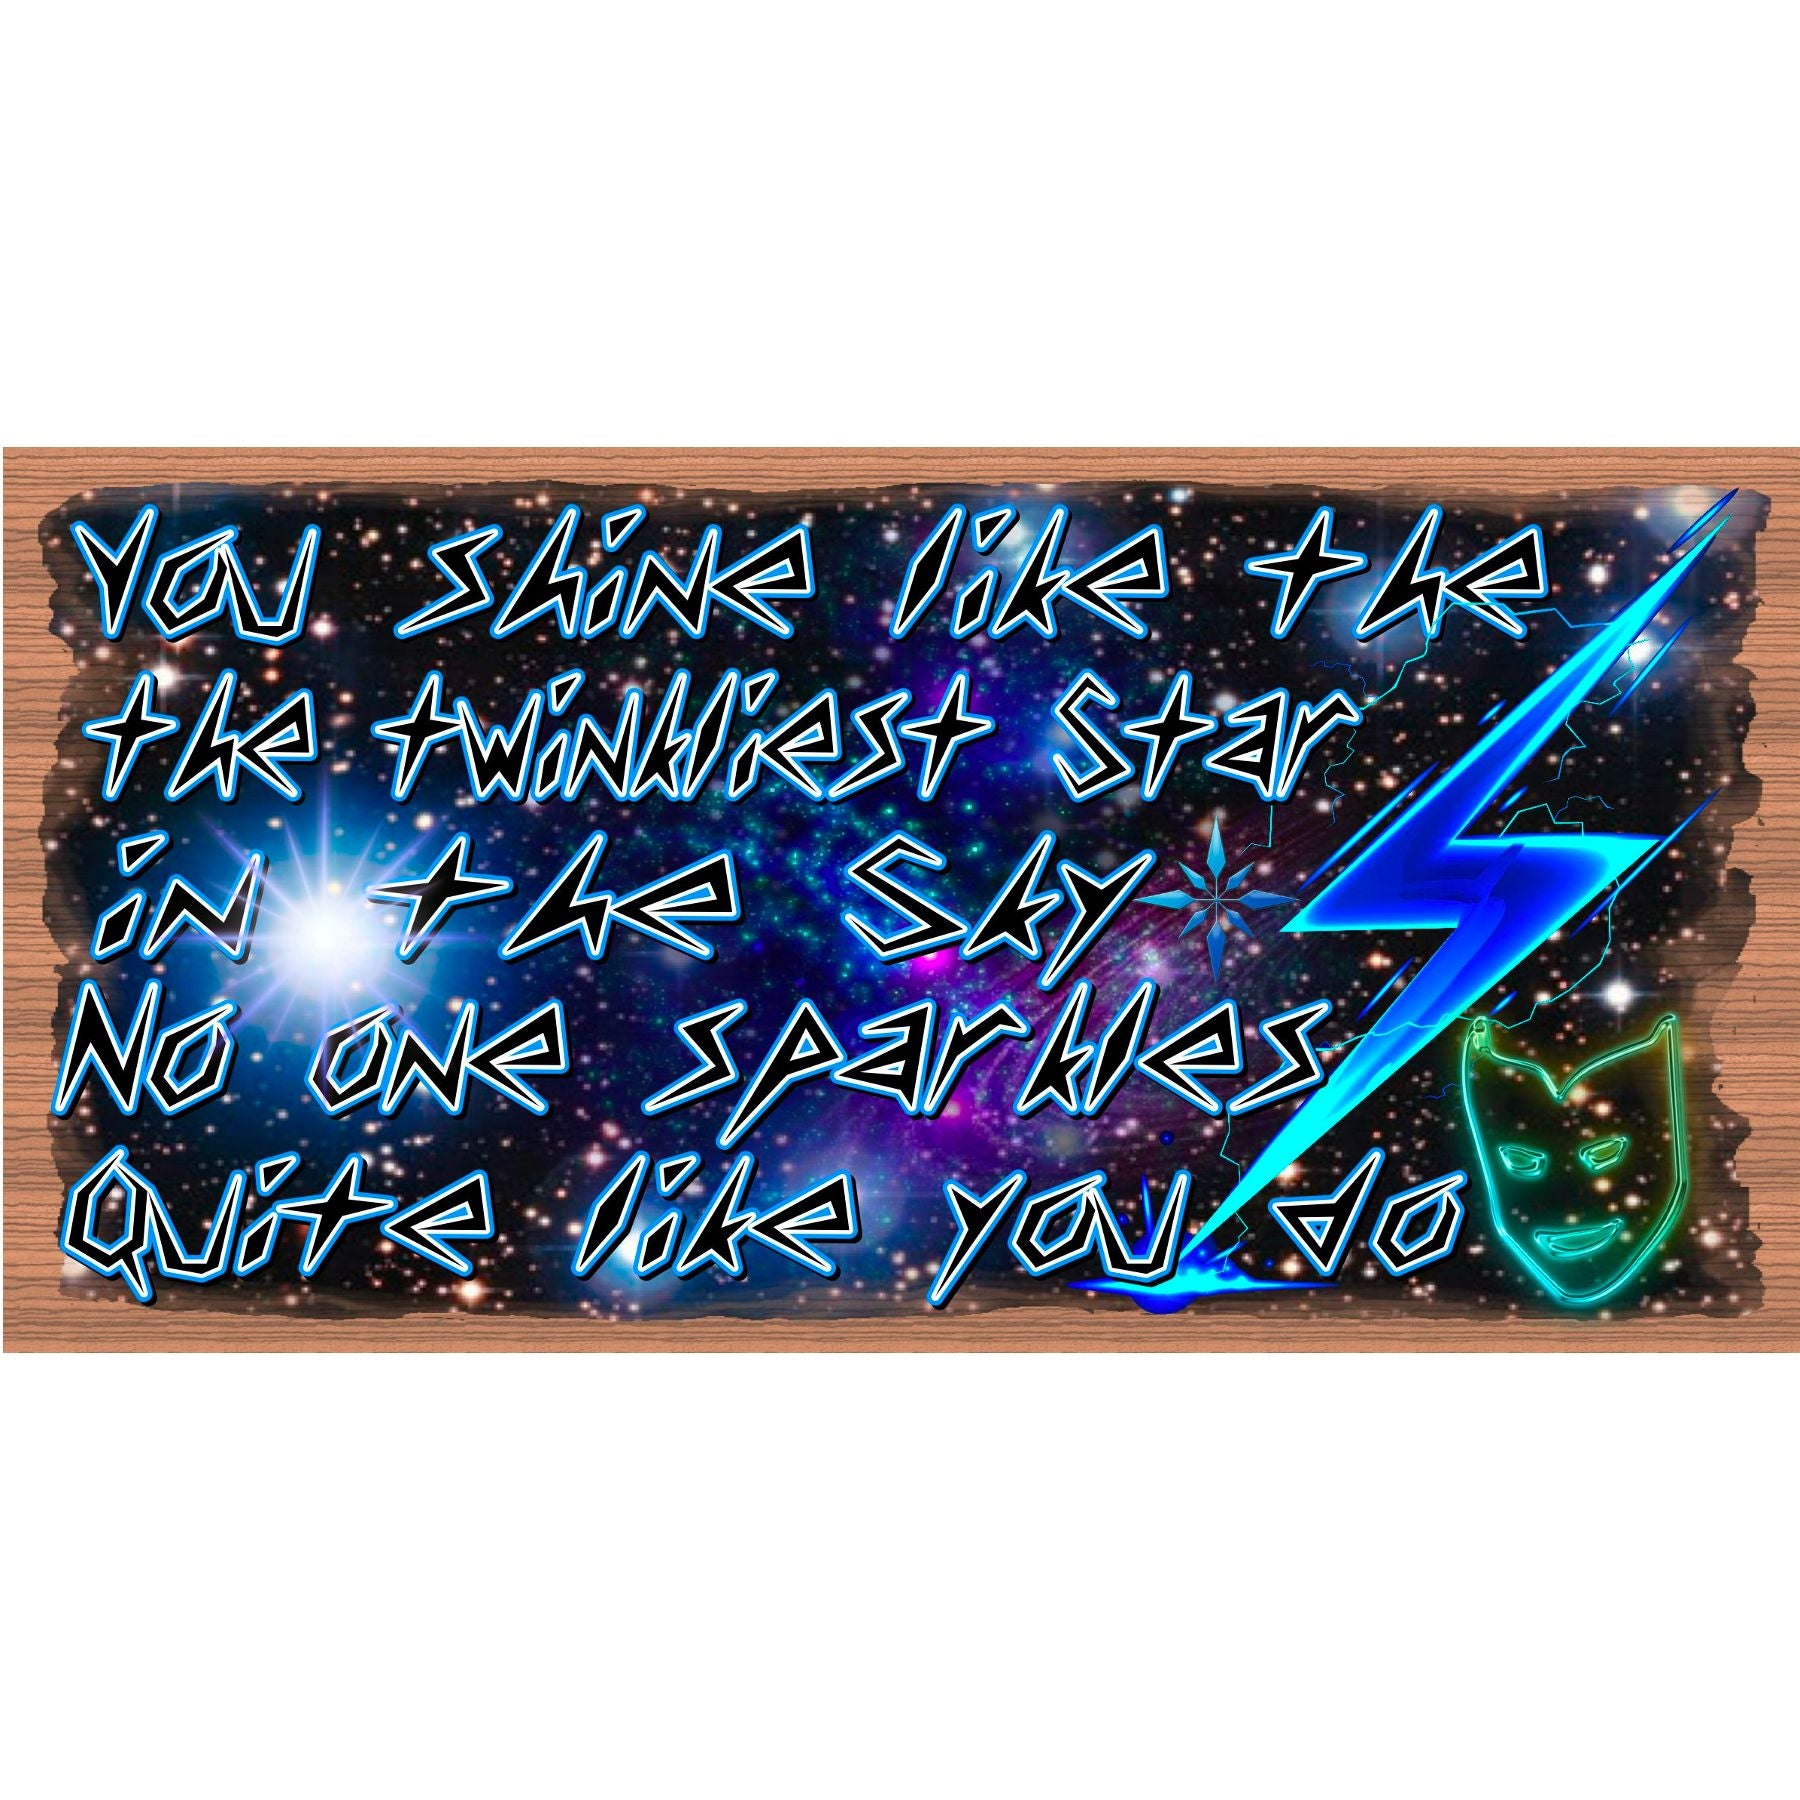 Friend Wood Signs -You Shine - GS -2946